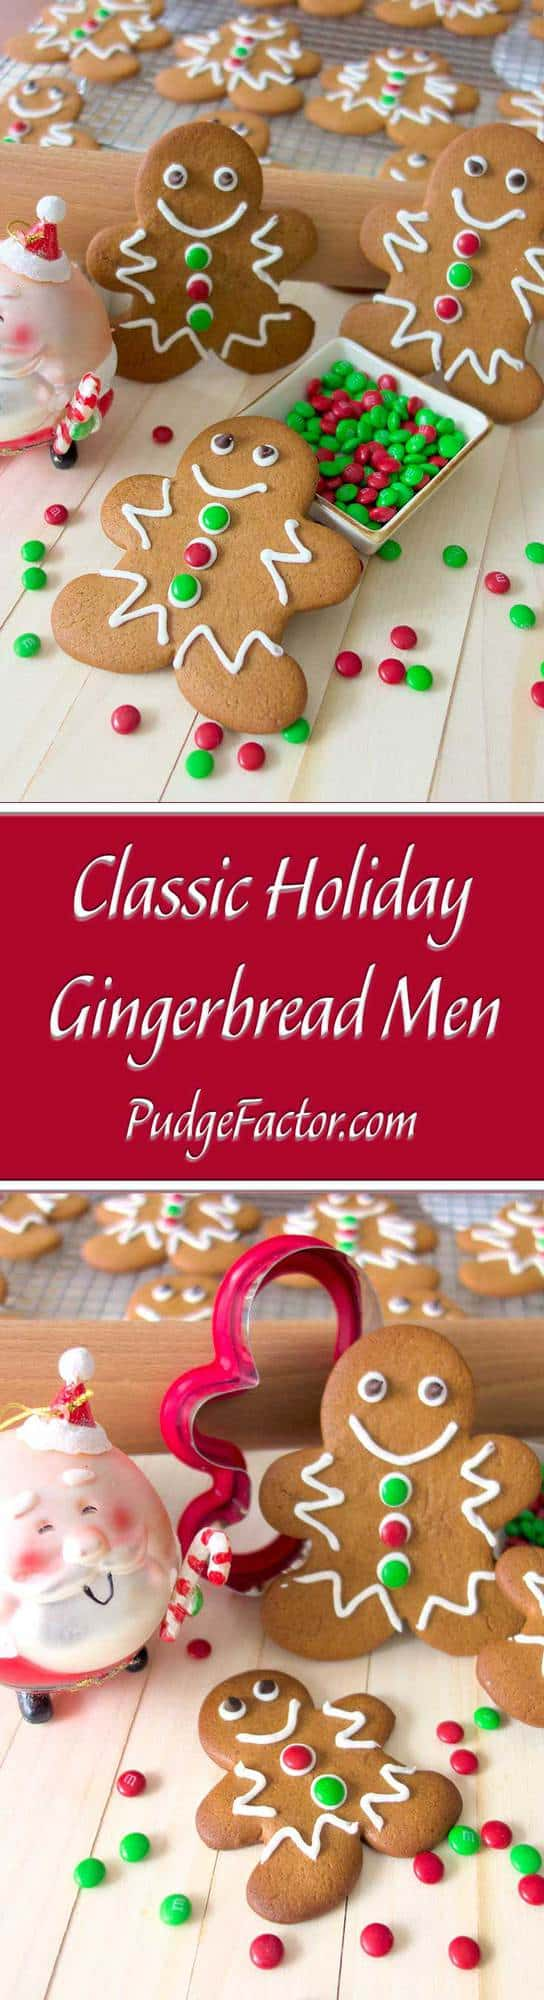 Classic Holiday Gingerbread Men - soft and chewy on the inside with just the right amount of crunch on the outside! Packaged in clear treat bags, they make wonderful Christmas gifts for kids of all ages.